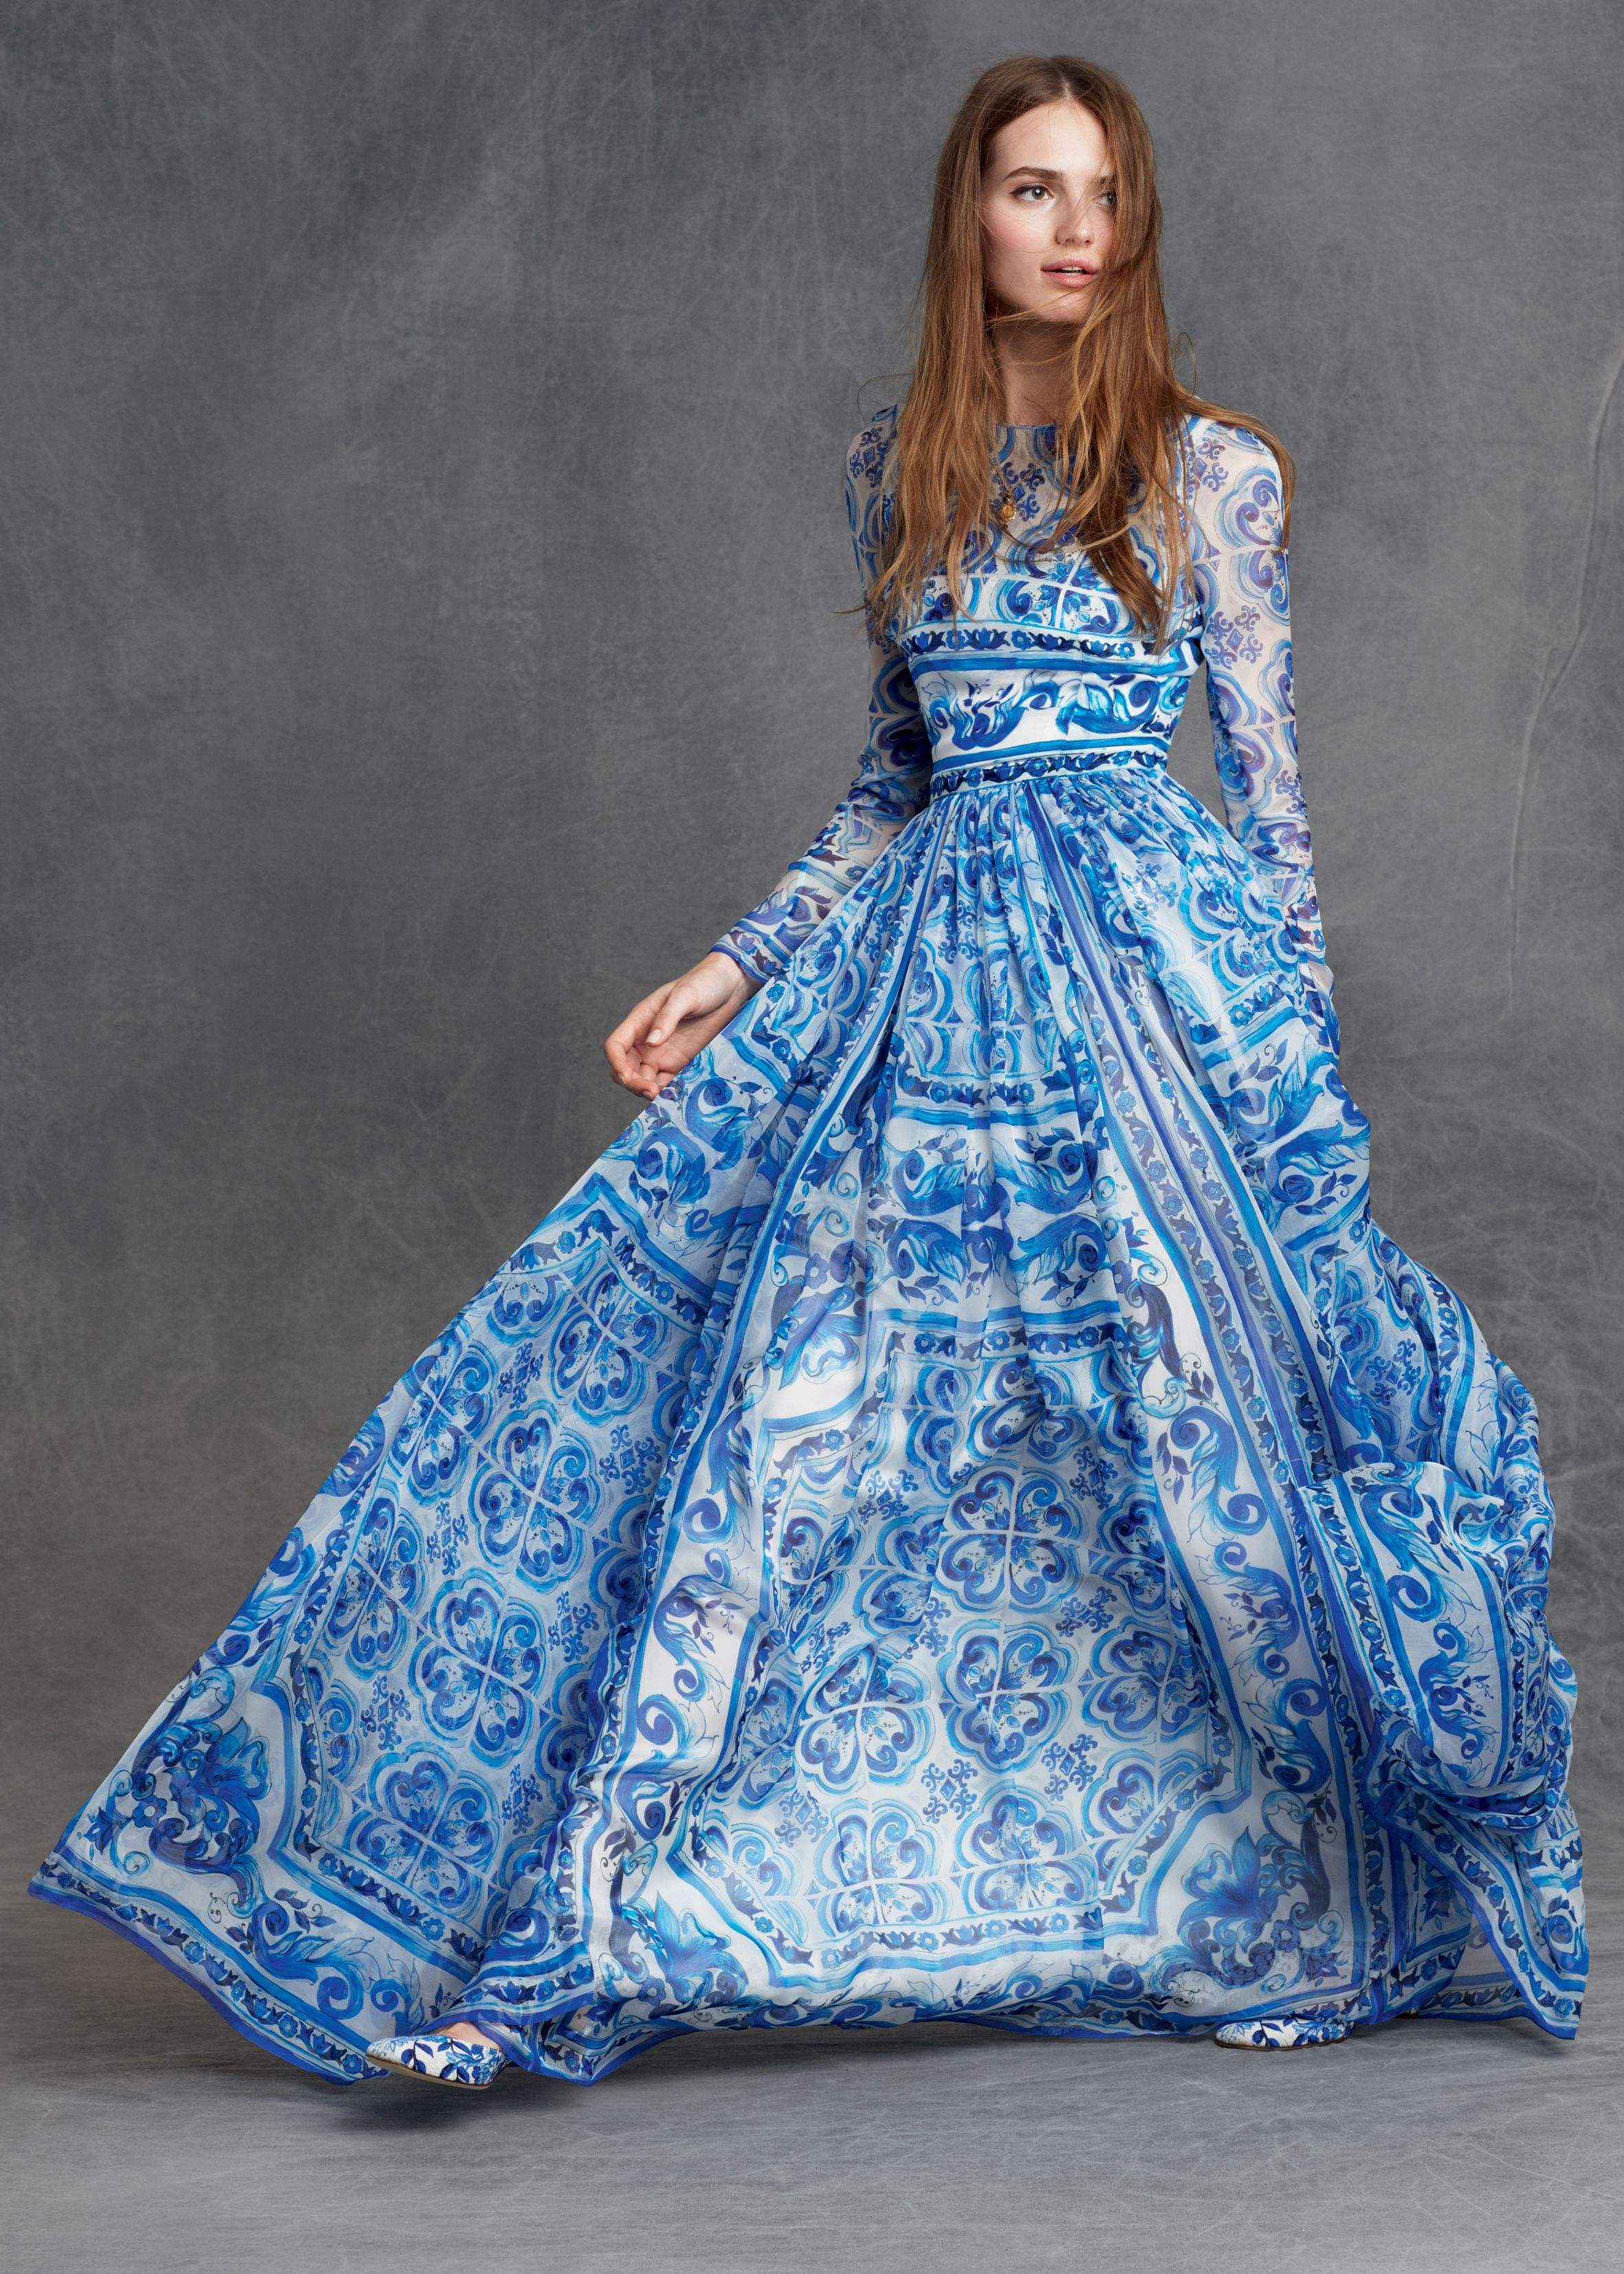 The Dolce Gabbana Pre-Fall 2015 blue and white   DGMajolica print is your  ticket to instant summer glamour. dolce and gabbana winter 2016 ... 9bea7ec1466